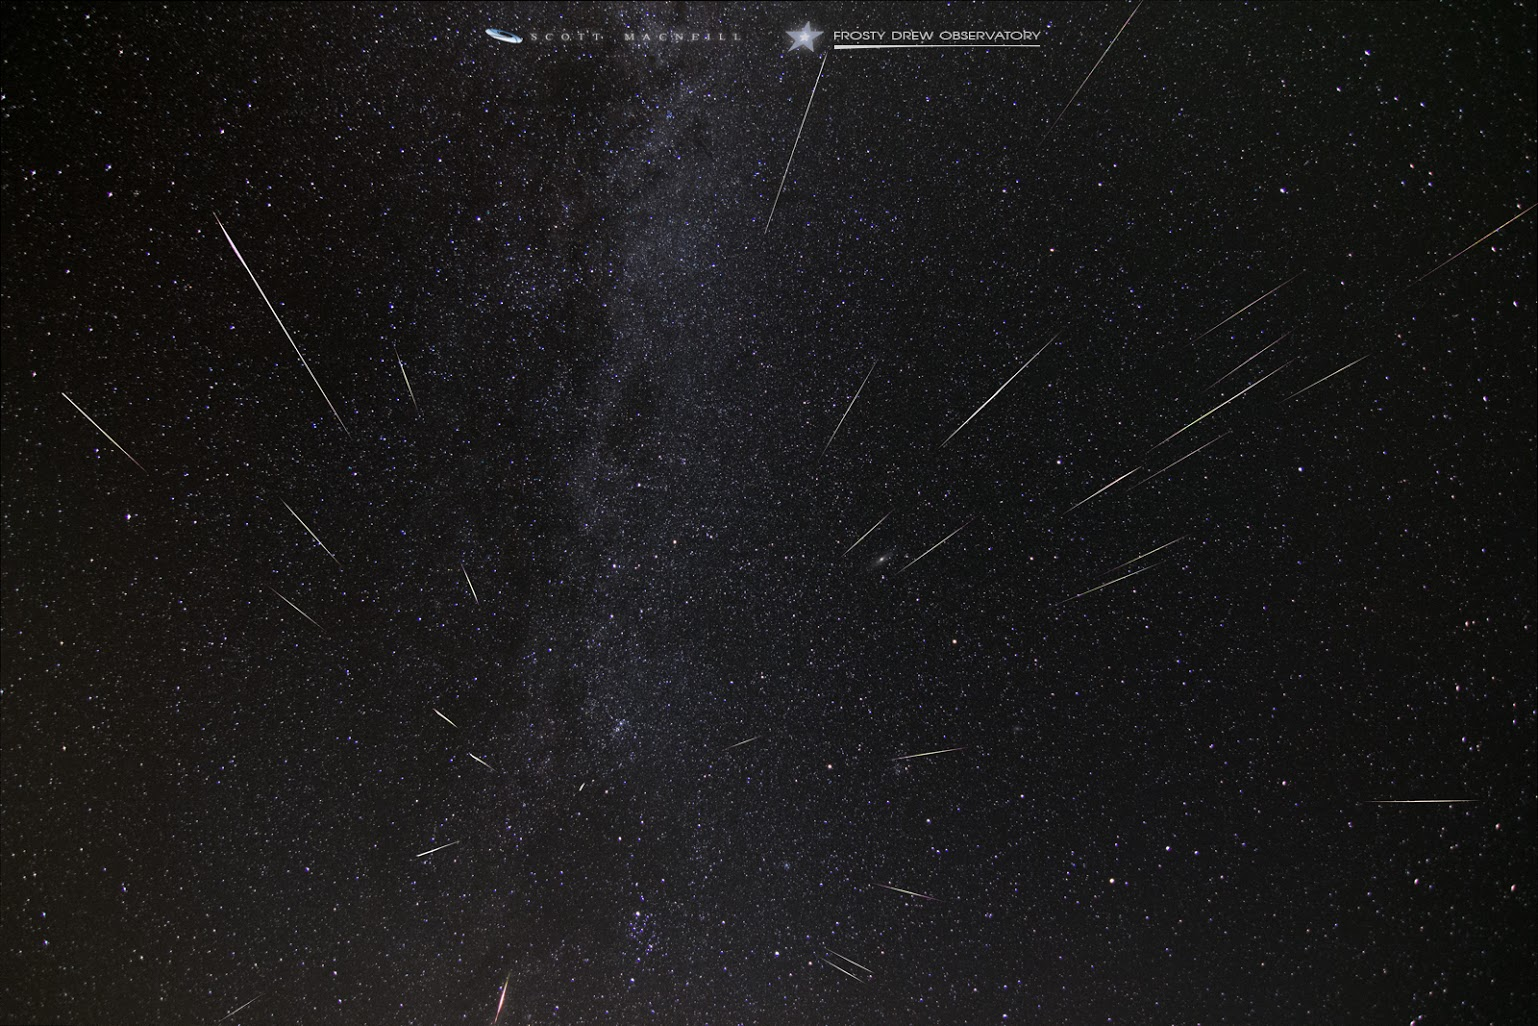 Photo: 2015 Perseids meteor shower imaged over five hours by Scott MacNeill